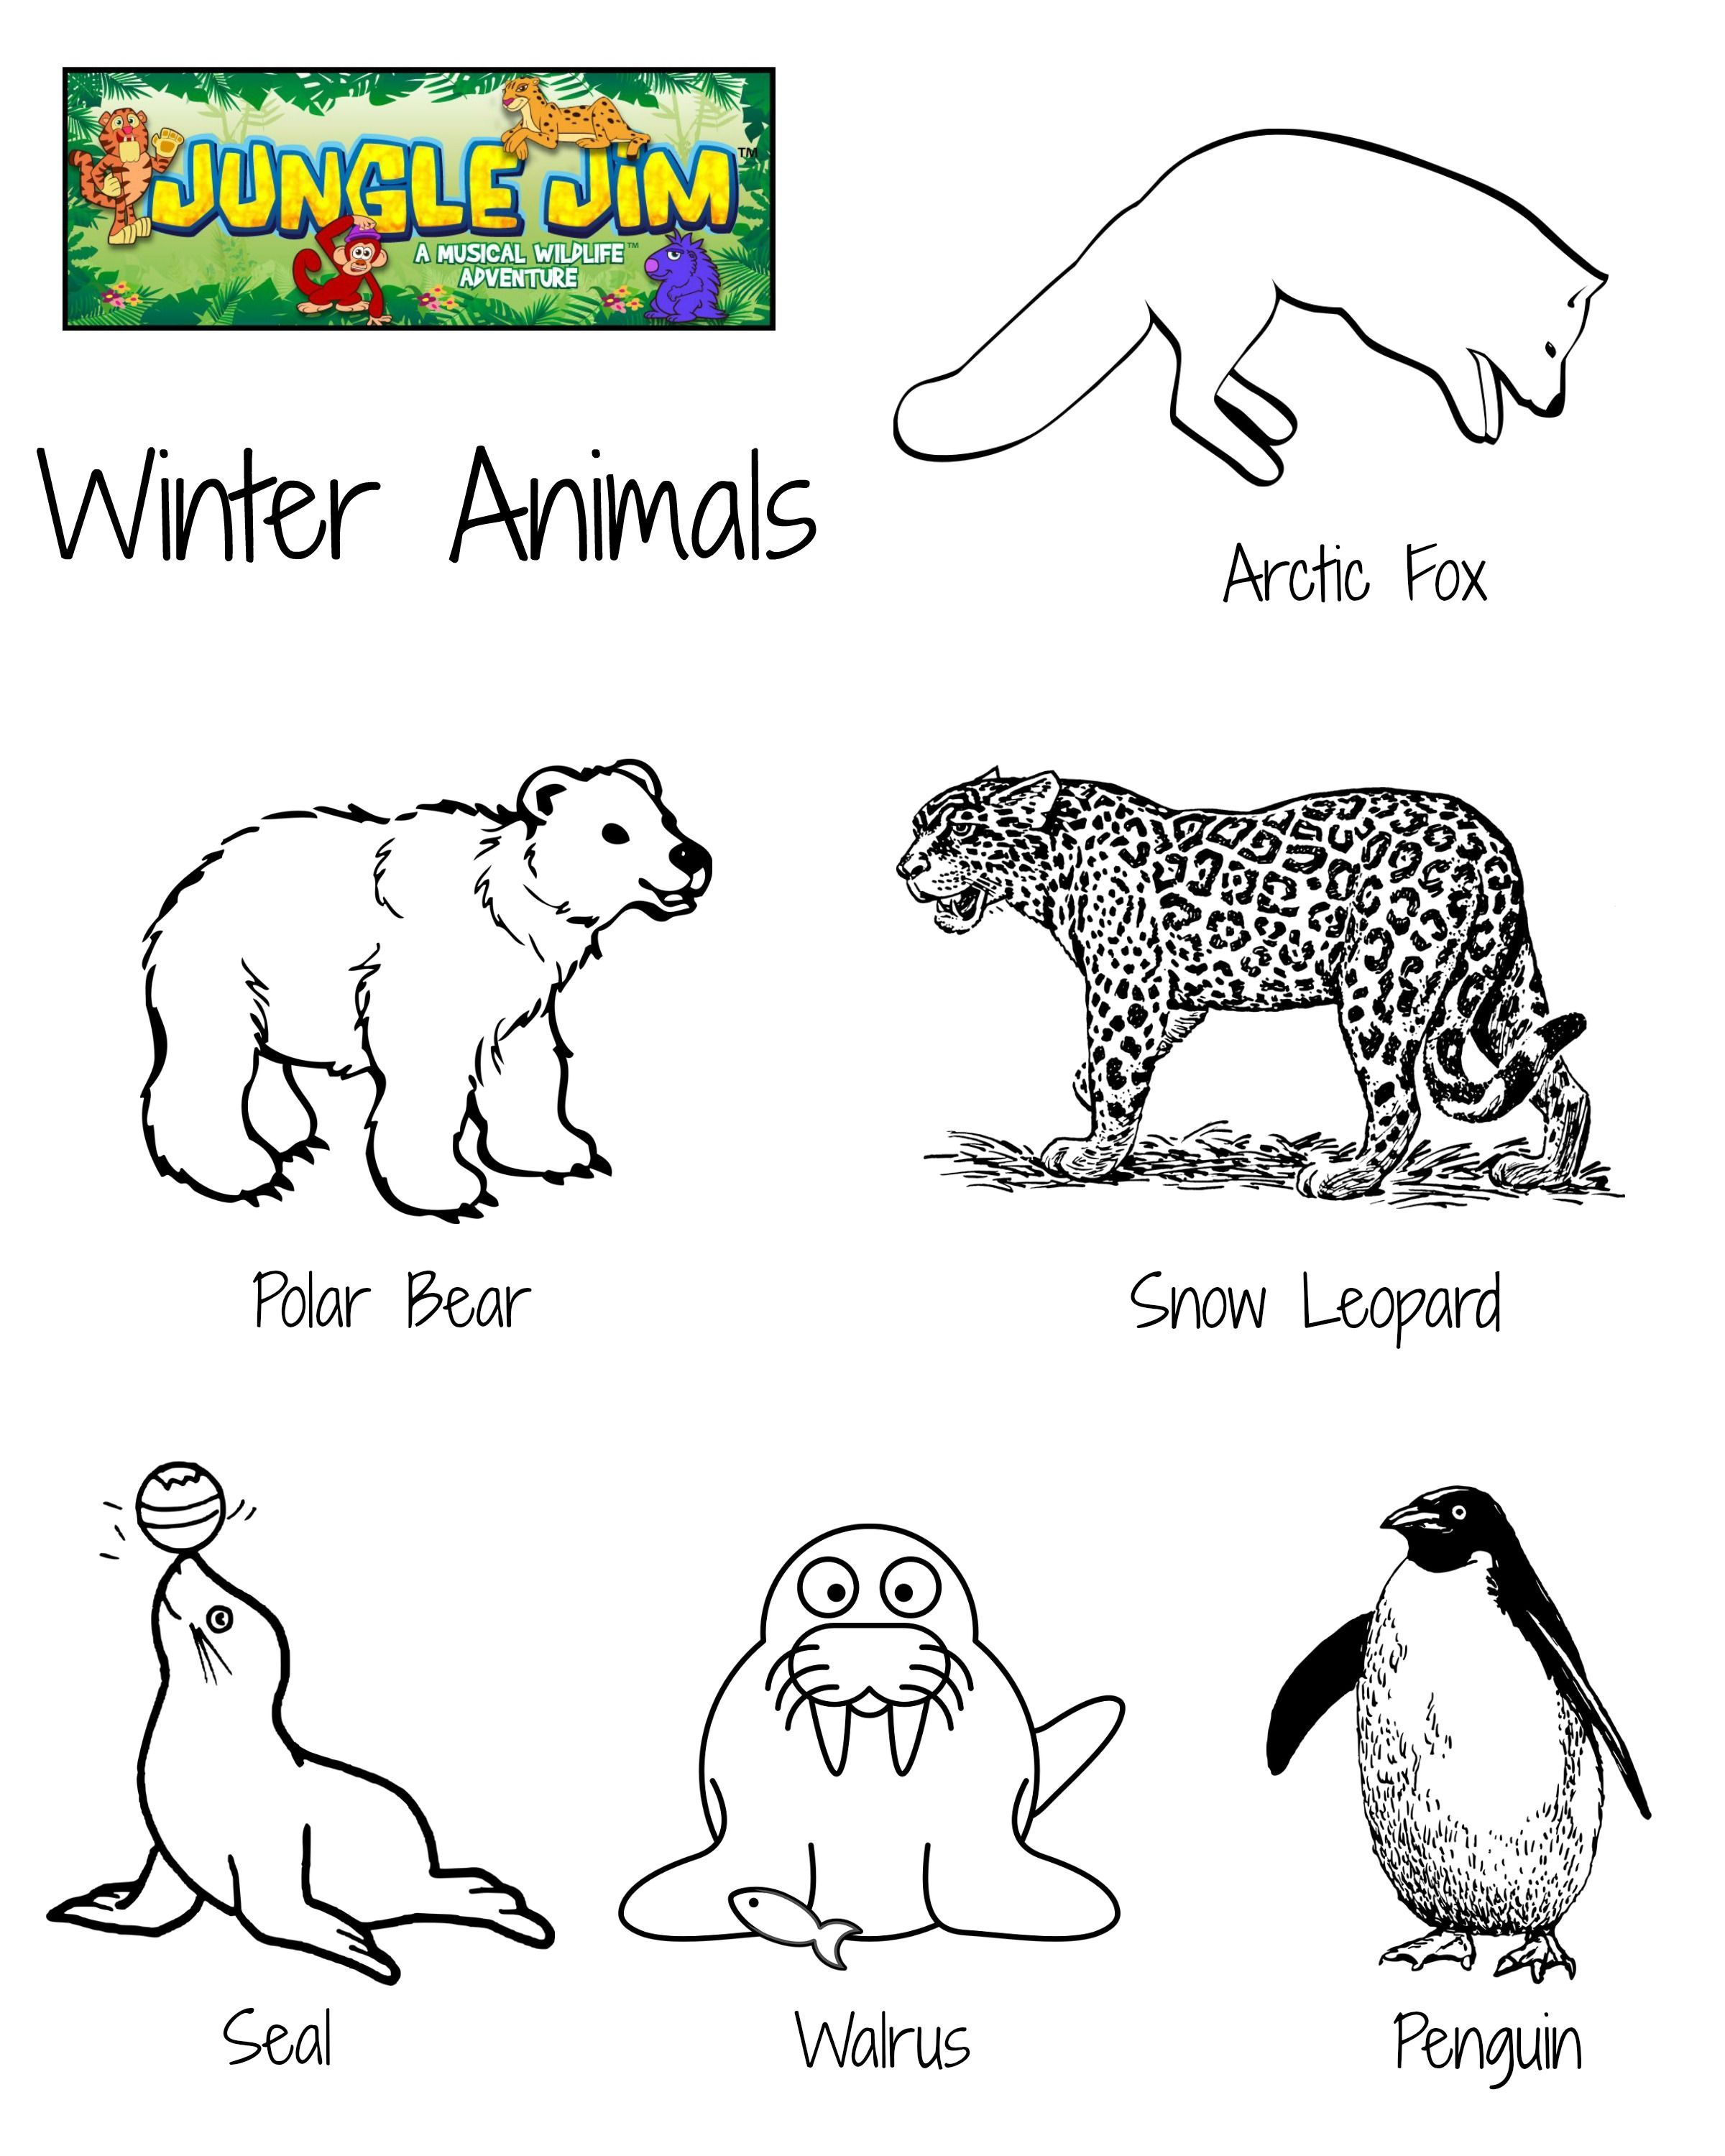 Winter Animal Free Printable Coloring Page With Lots Of Cute Winter Animals Junglejim W In 2021 Bear Coloring Pages Animal Coloring Pages Free Printable Coloring Pages